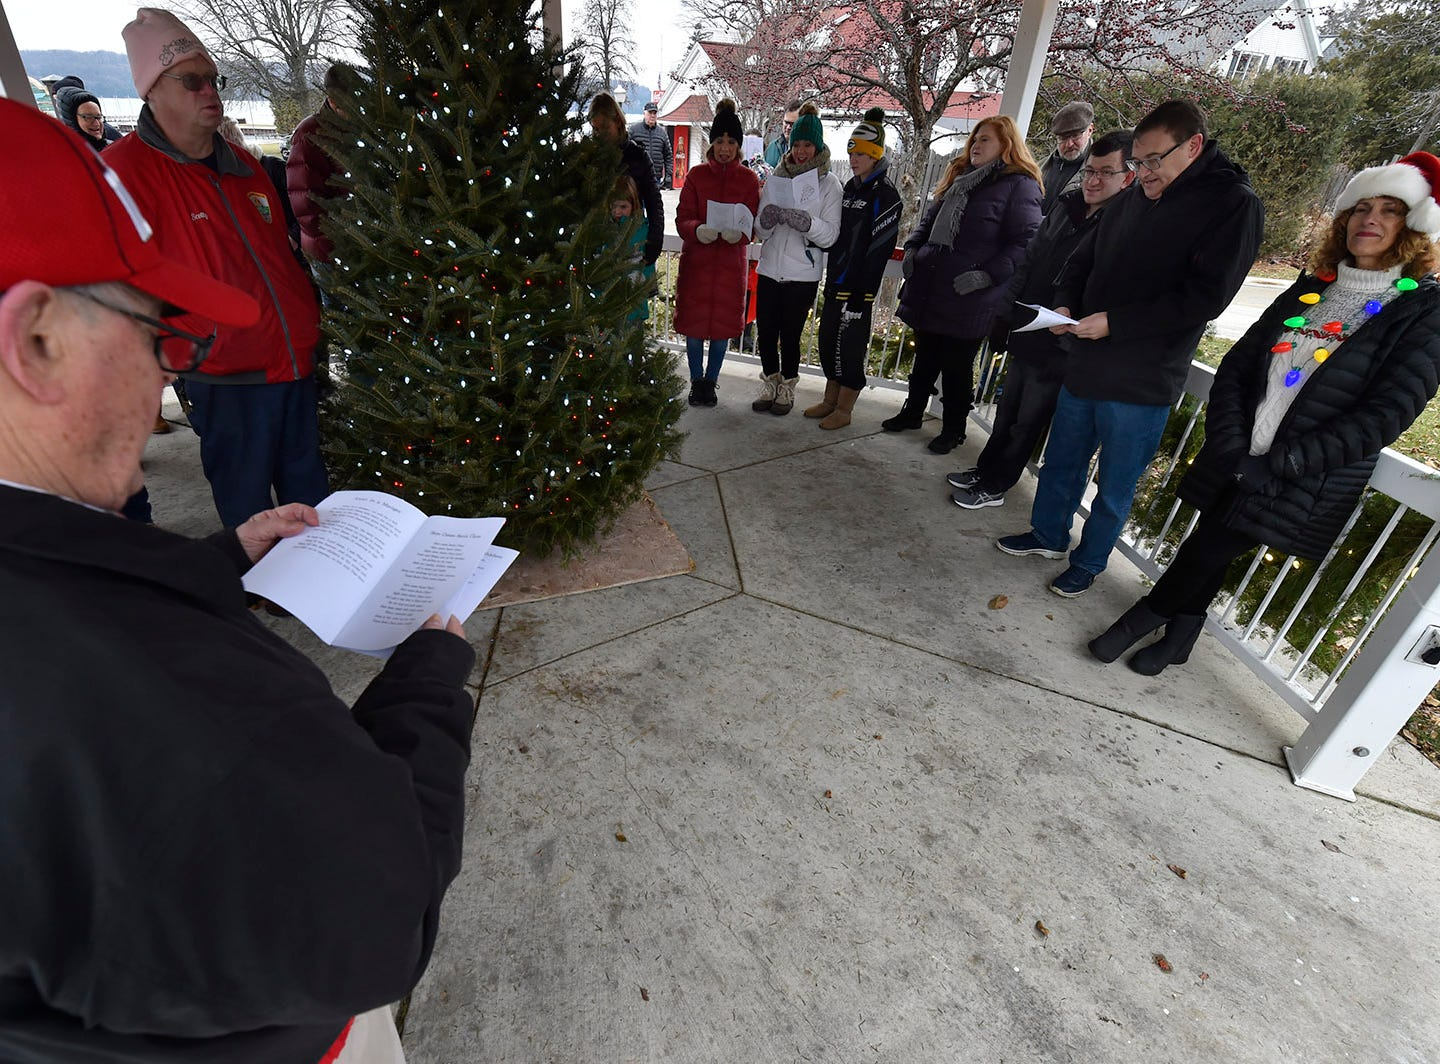 Following the tree-lighting ceremony, the group sang Christmas carols during Christmas in the Village in Ephraim on Saturday, Dec. 1, 2018. Tina M. Gohr/USA TODAY NETWORK-Wisconsin